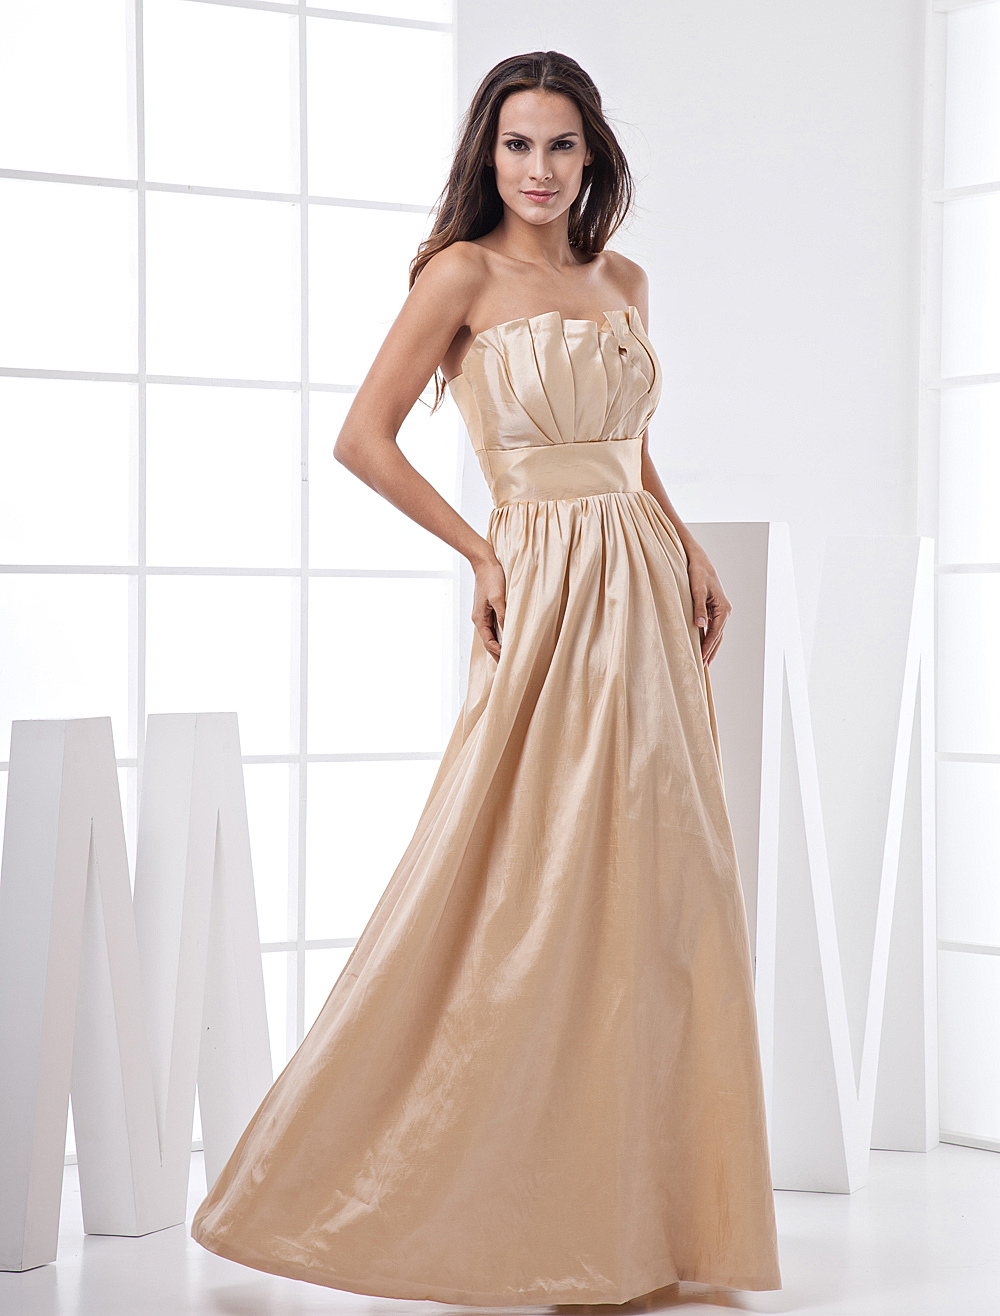 Gold Champagne Taffeta Strapless Floor Length Bridesmaid Dress